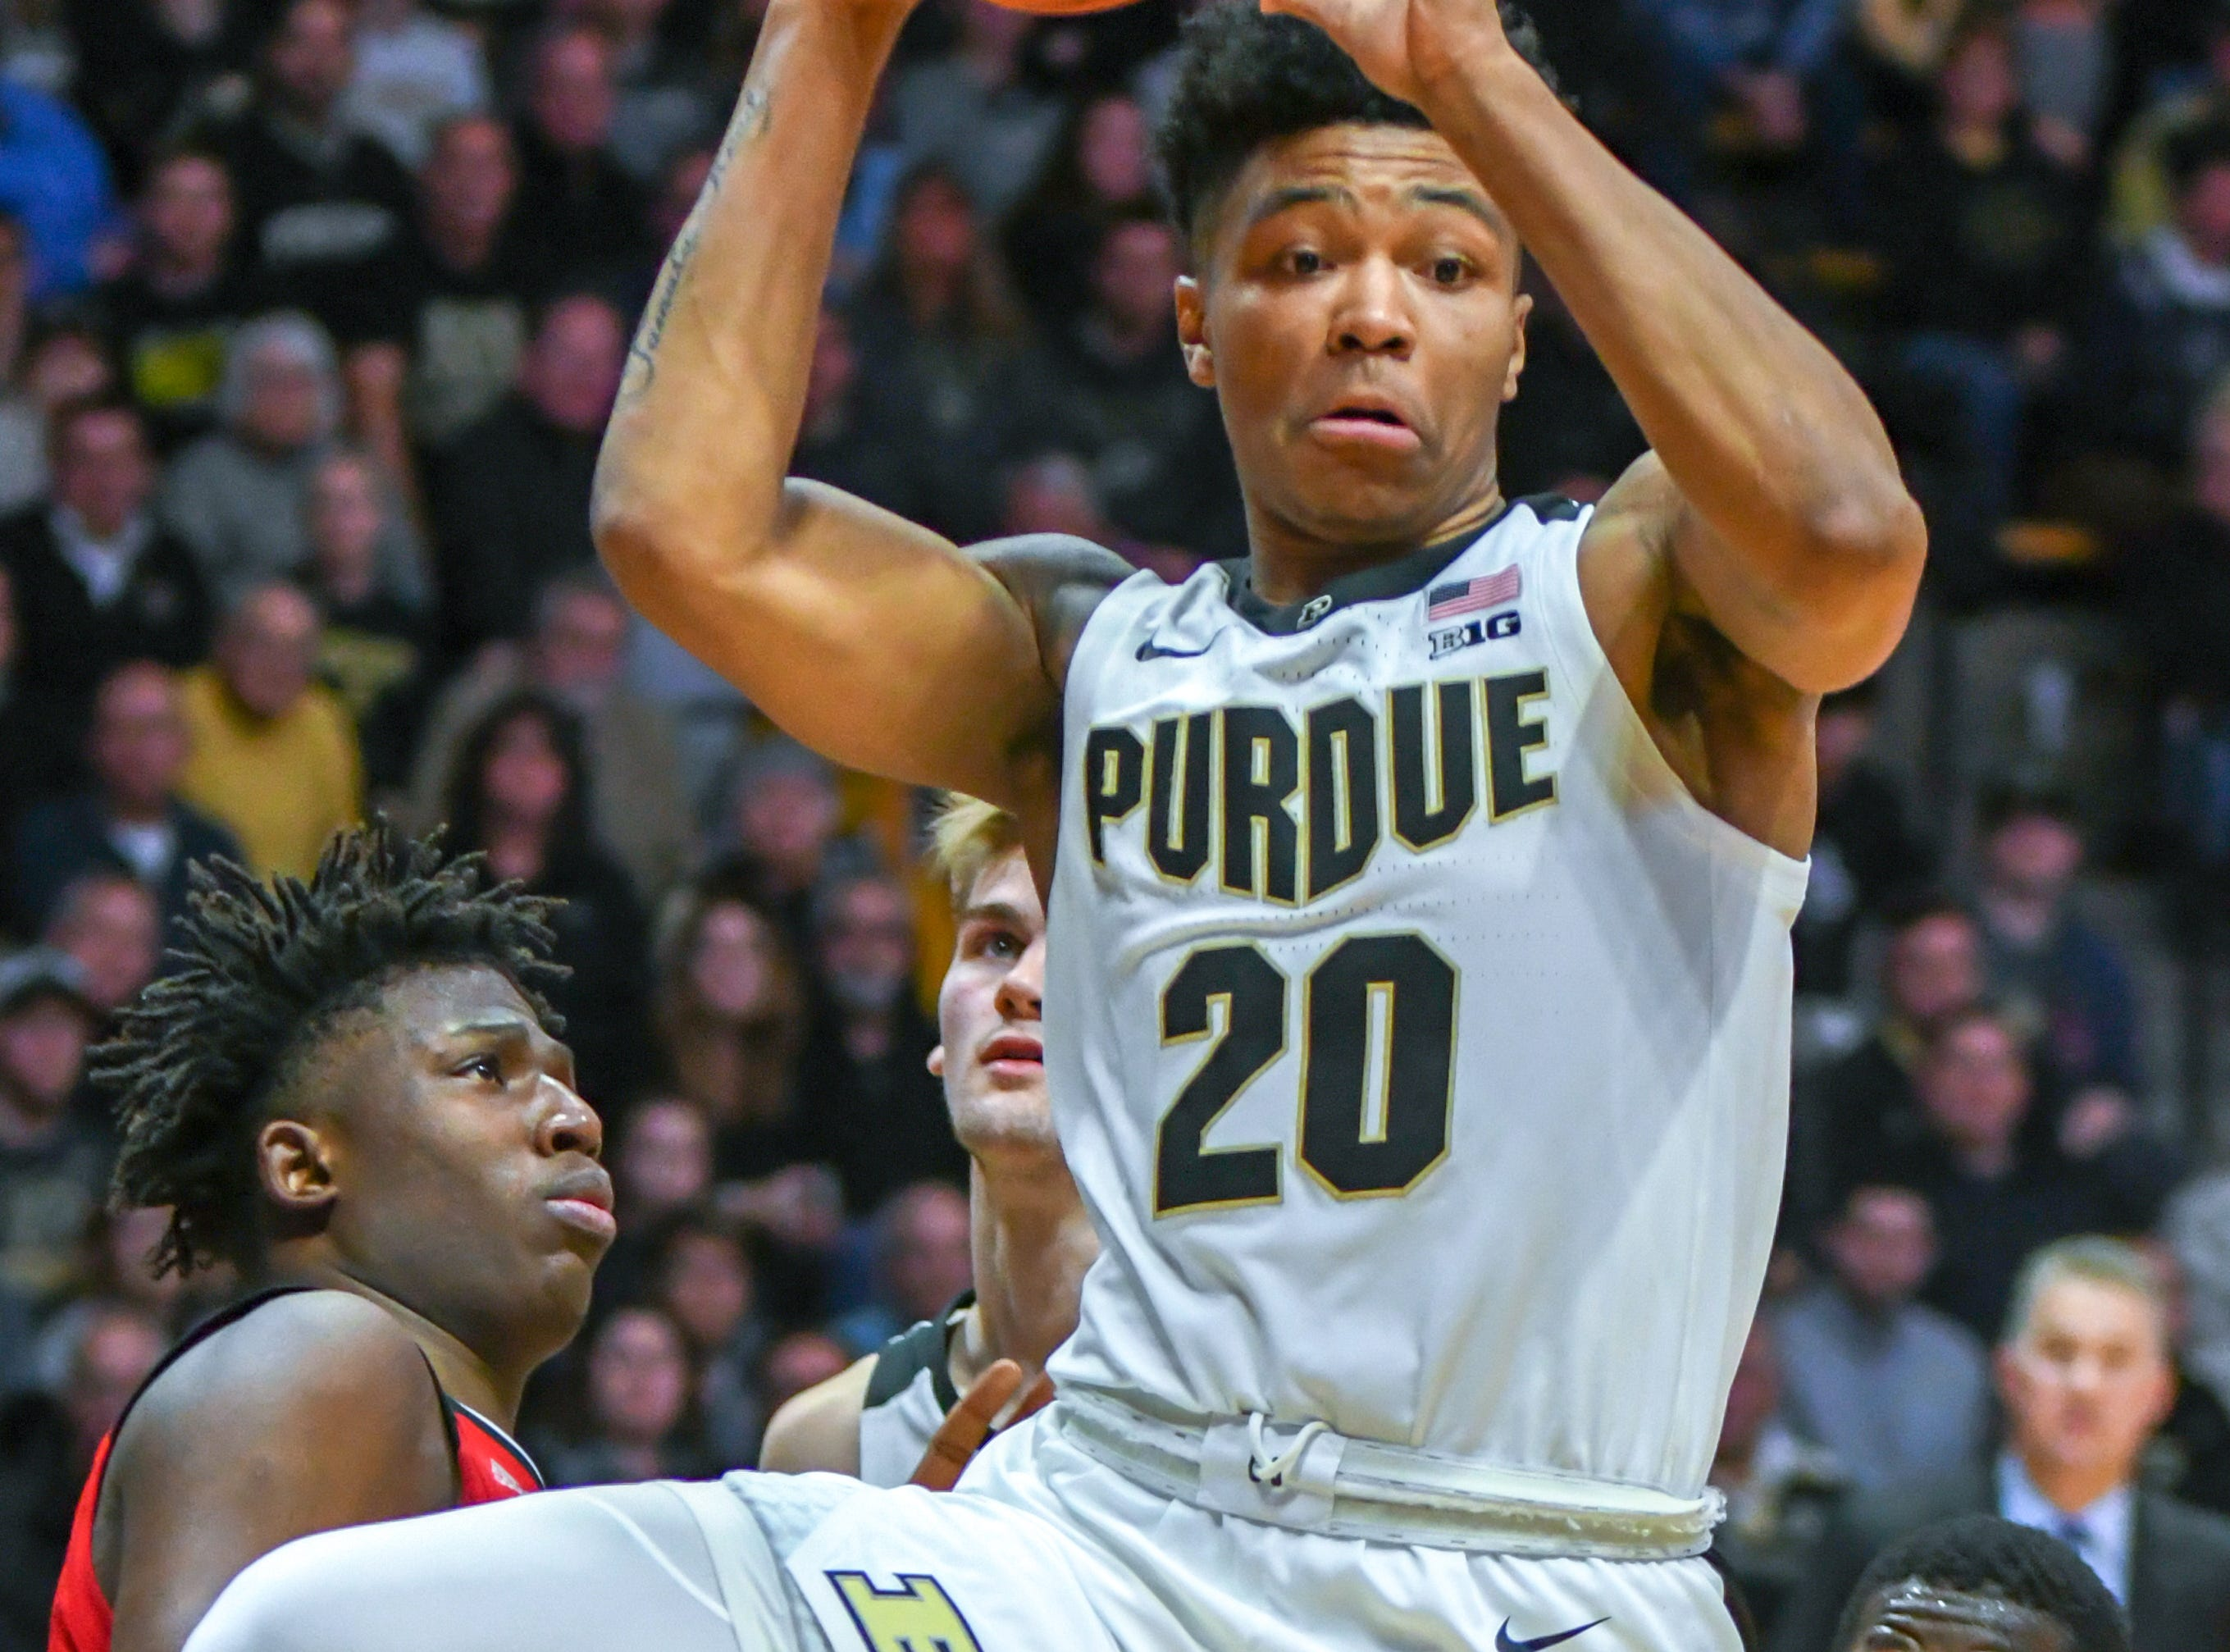 Action from Purdue's 89-54 win over Rutgers at Purdue University in West Lafayette on January 15, 2019. Nojel Eastern